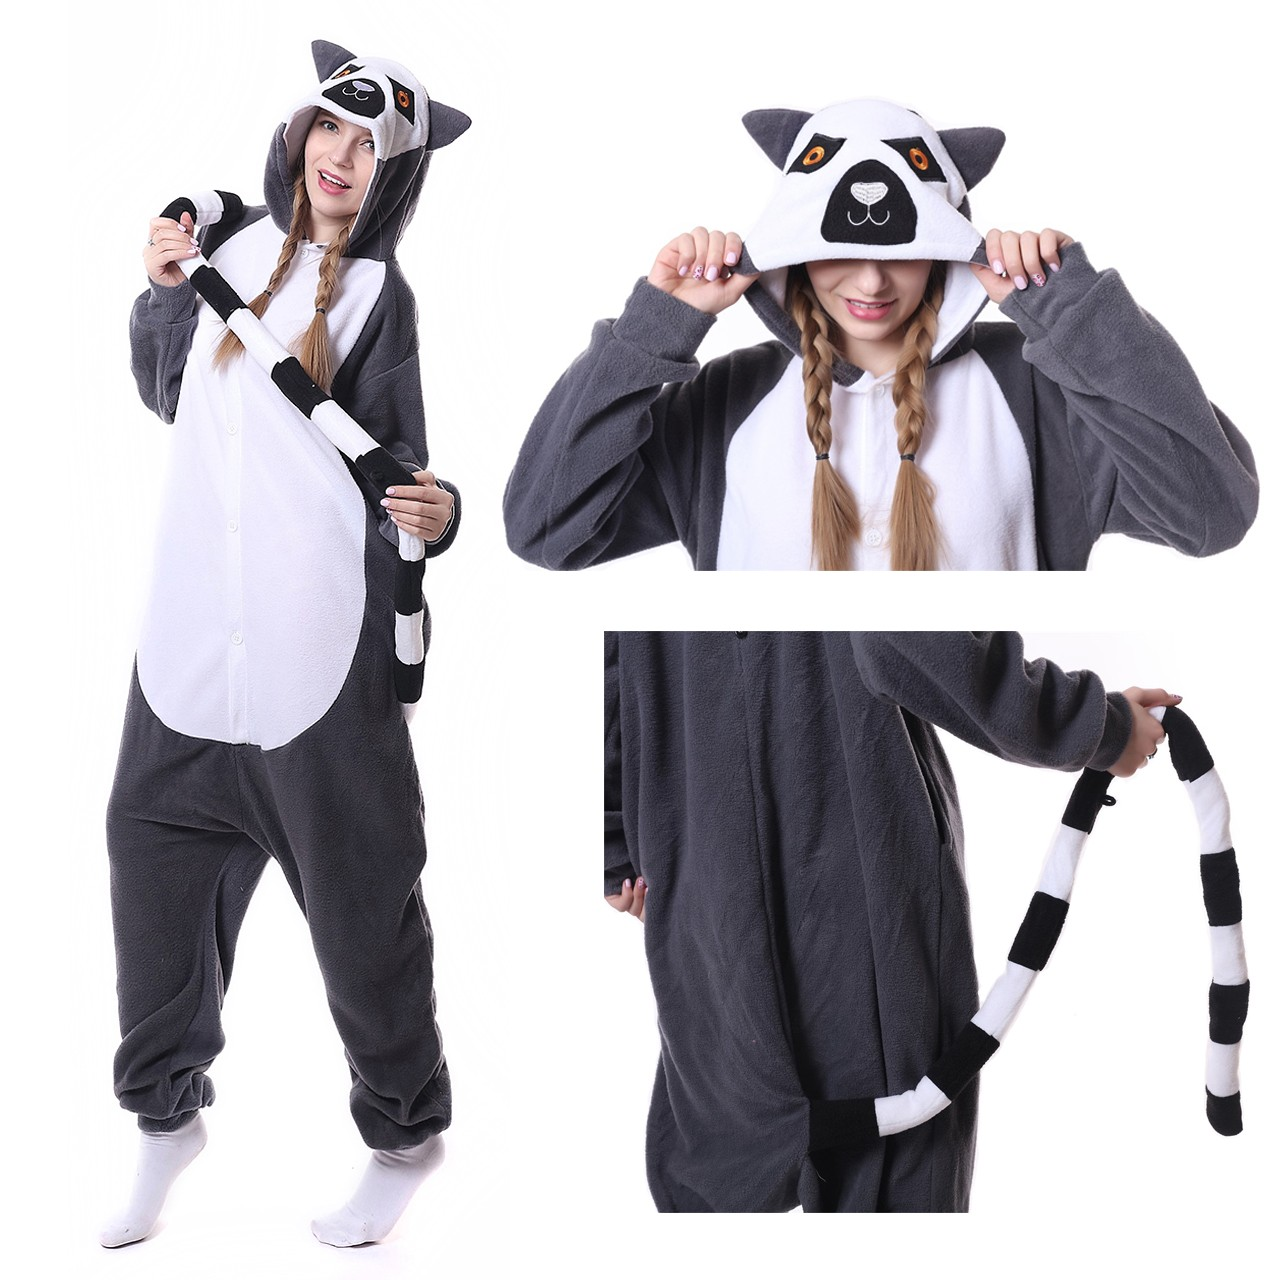 Image of: Cow Lemur Onesie Kigurumi Animal Onesies Women Men Halloween Costumes Hionesiescom Lemur Onesie Lemur Pajamas For Women Men Online Sale